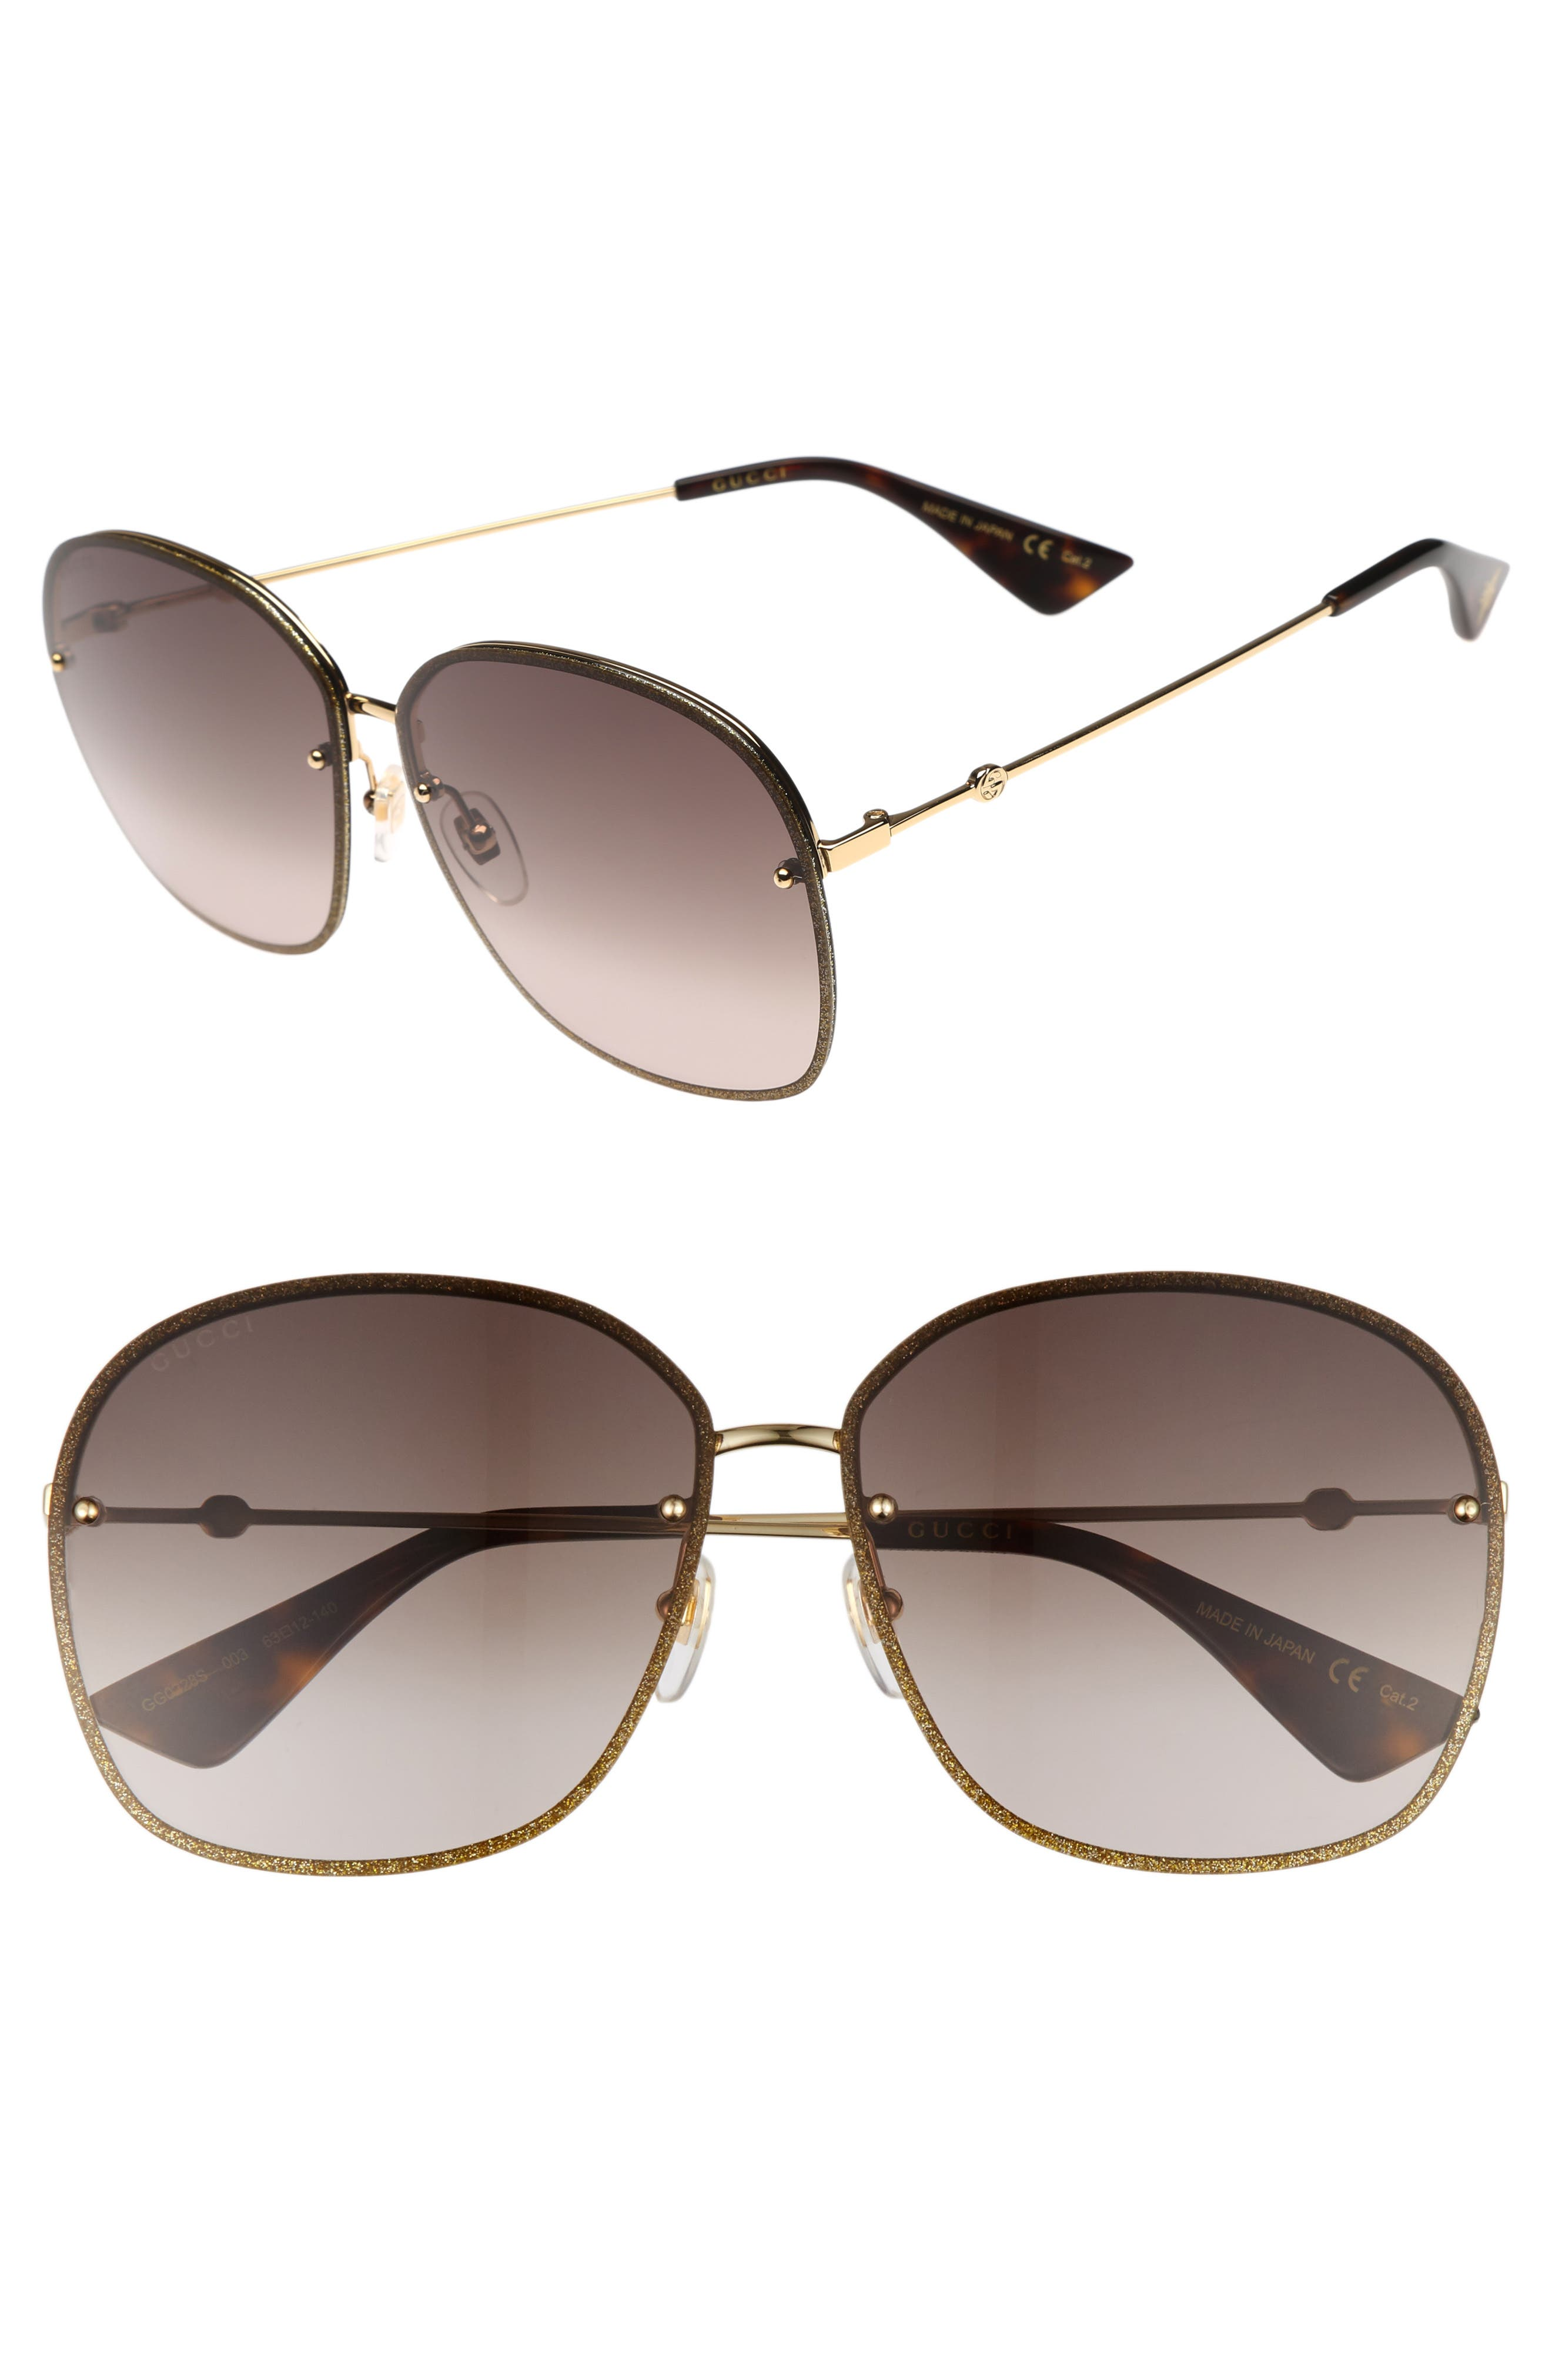 63mm Oversize Square Sunglasses,                         Main,                         color, Gold/ Brown